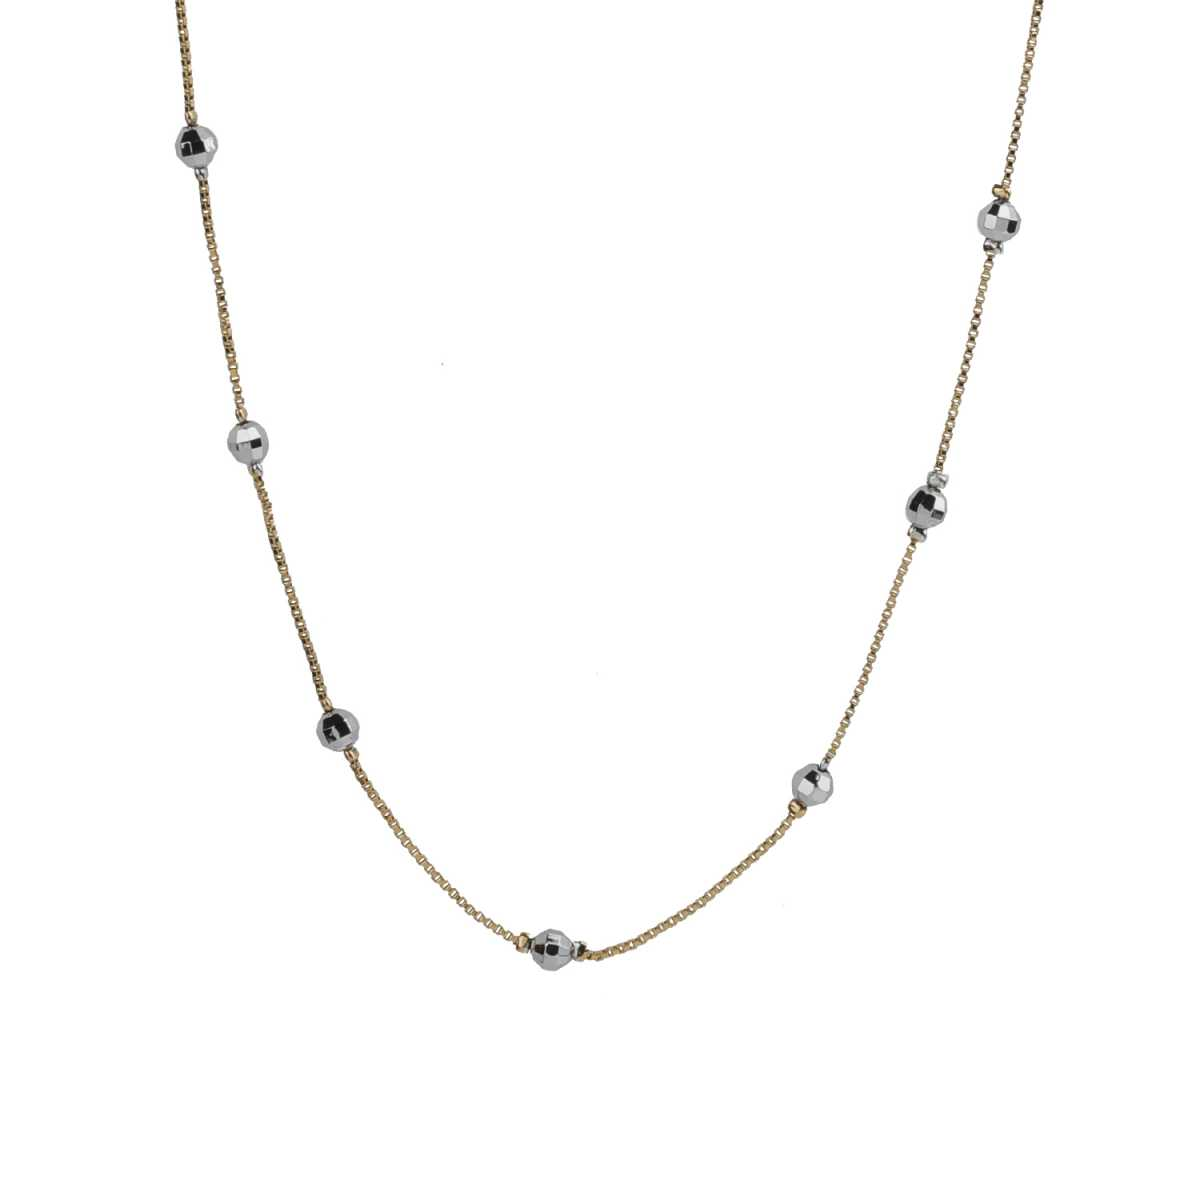 Facinating Gold 18 Inch Chain With Metallic Crystal Ball Pretty Look For Girls And Women Jewellery